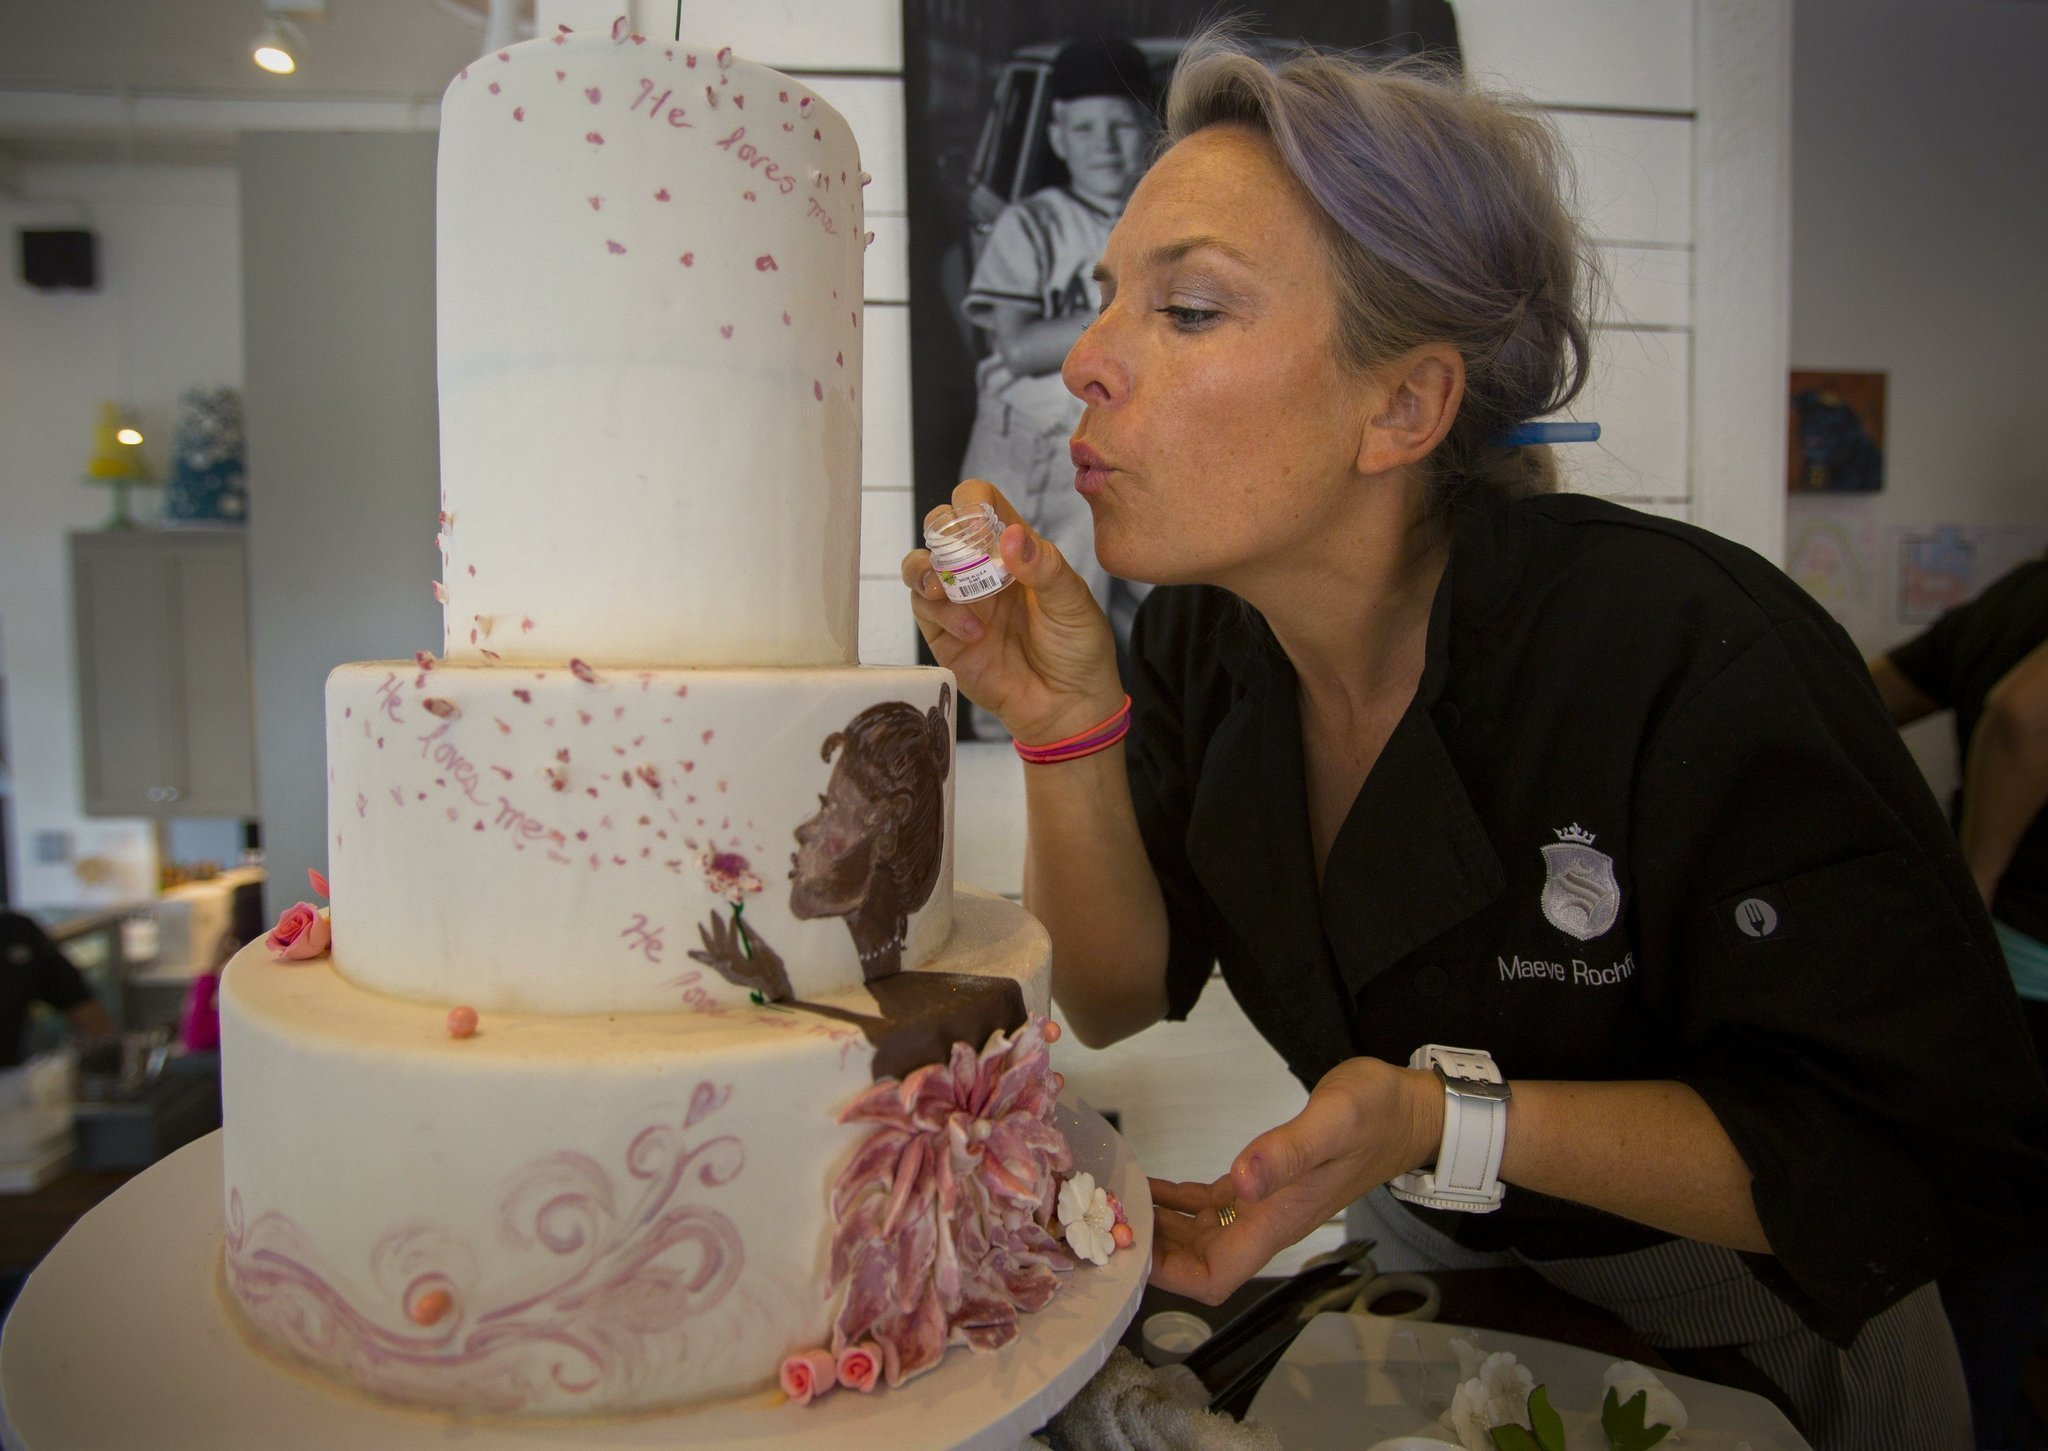 Cake Decorating Competition Tv Show : Bakers sweet on cake competitions - The San Diego Union ...